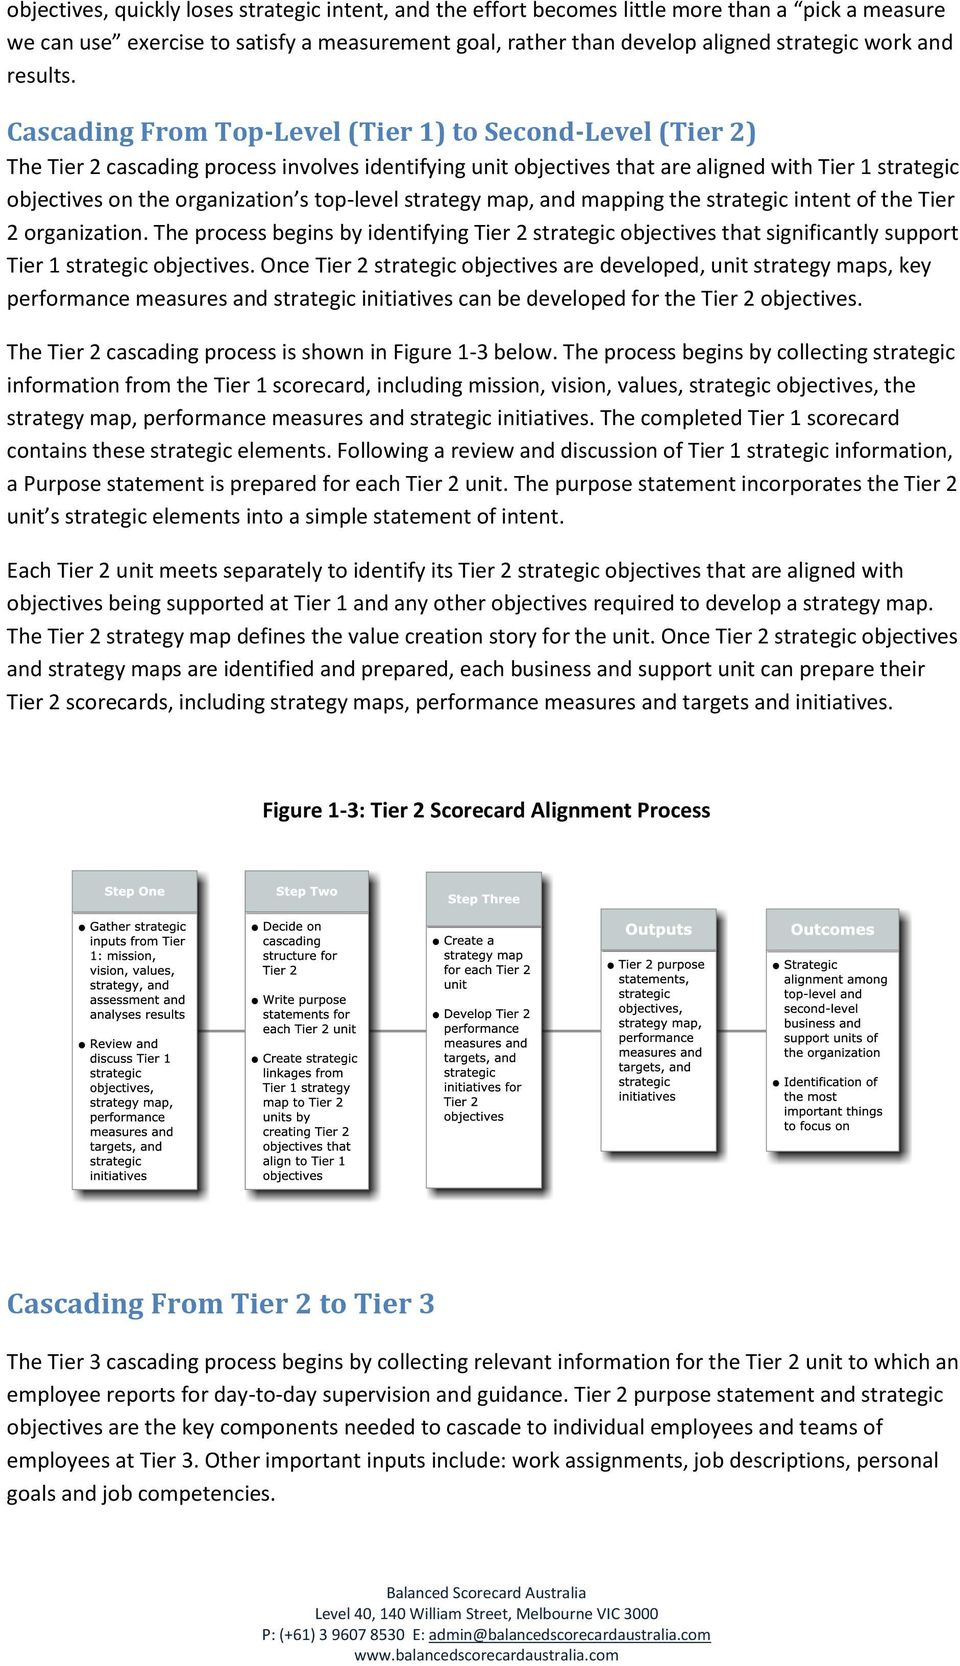 Cascading From Top-Level (Tier 1) to Second-Level (Tier 2) The Tier 2 cascading process involves identifying unit objectives that are aligned with Tier 1 strategic objectives on the organization s